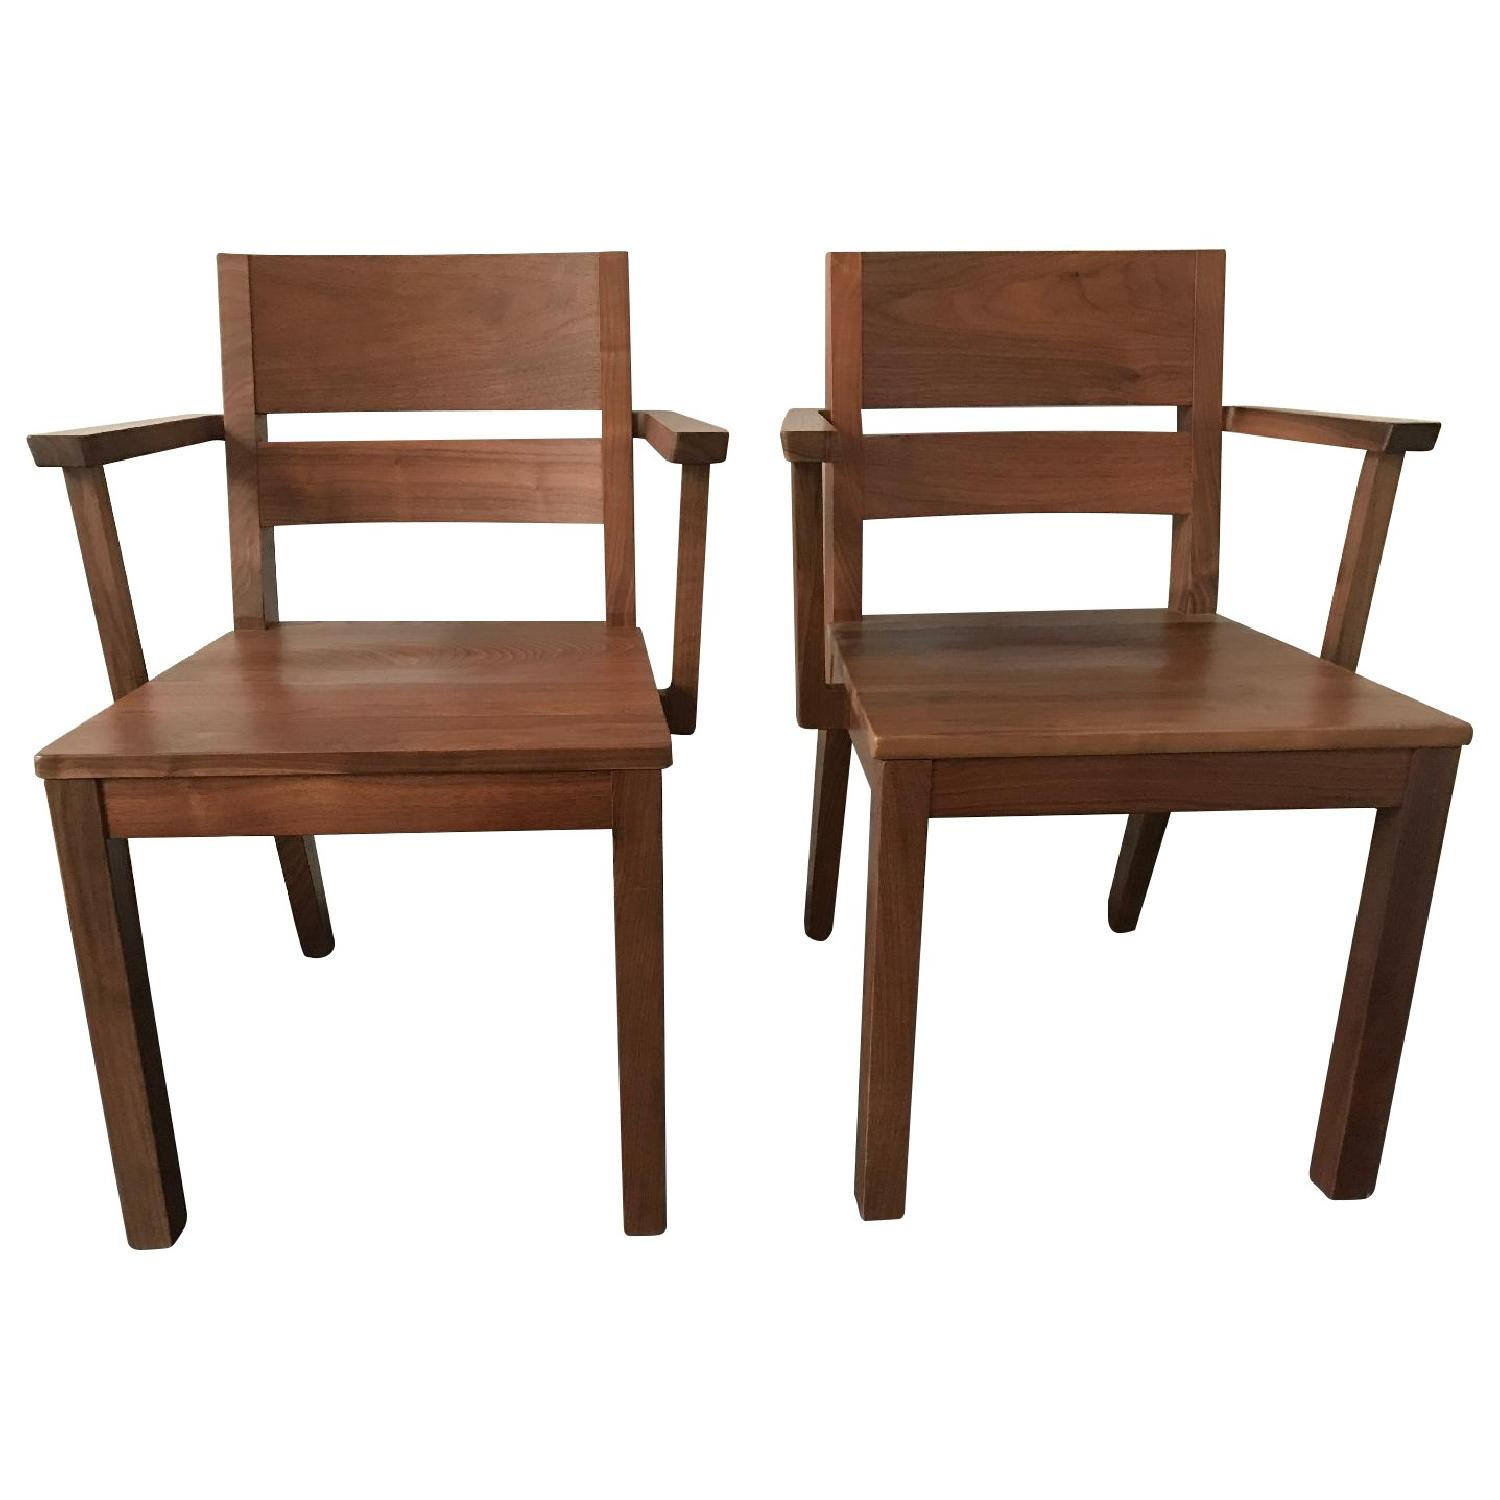 Room & Board Afton Walnut Dining Chair w/ Arms - image-0